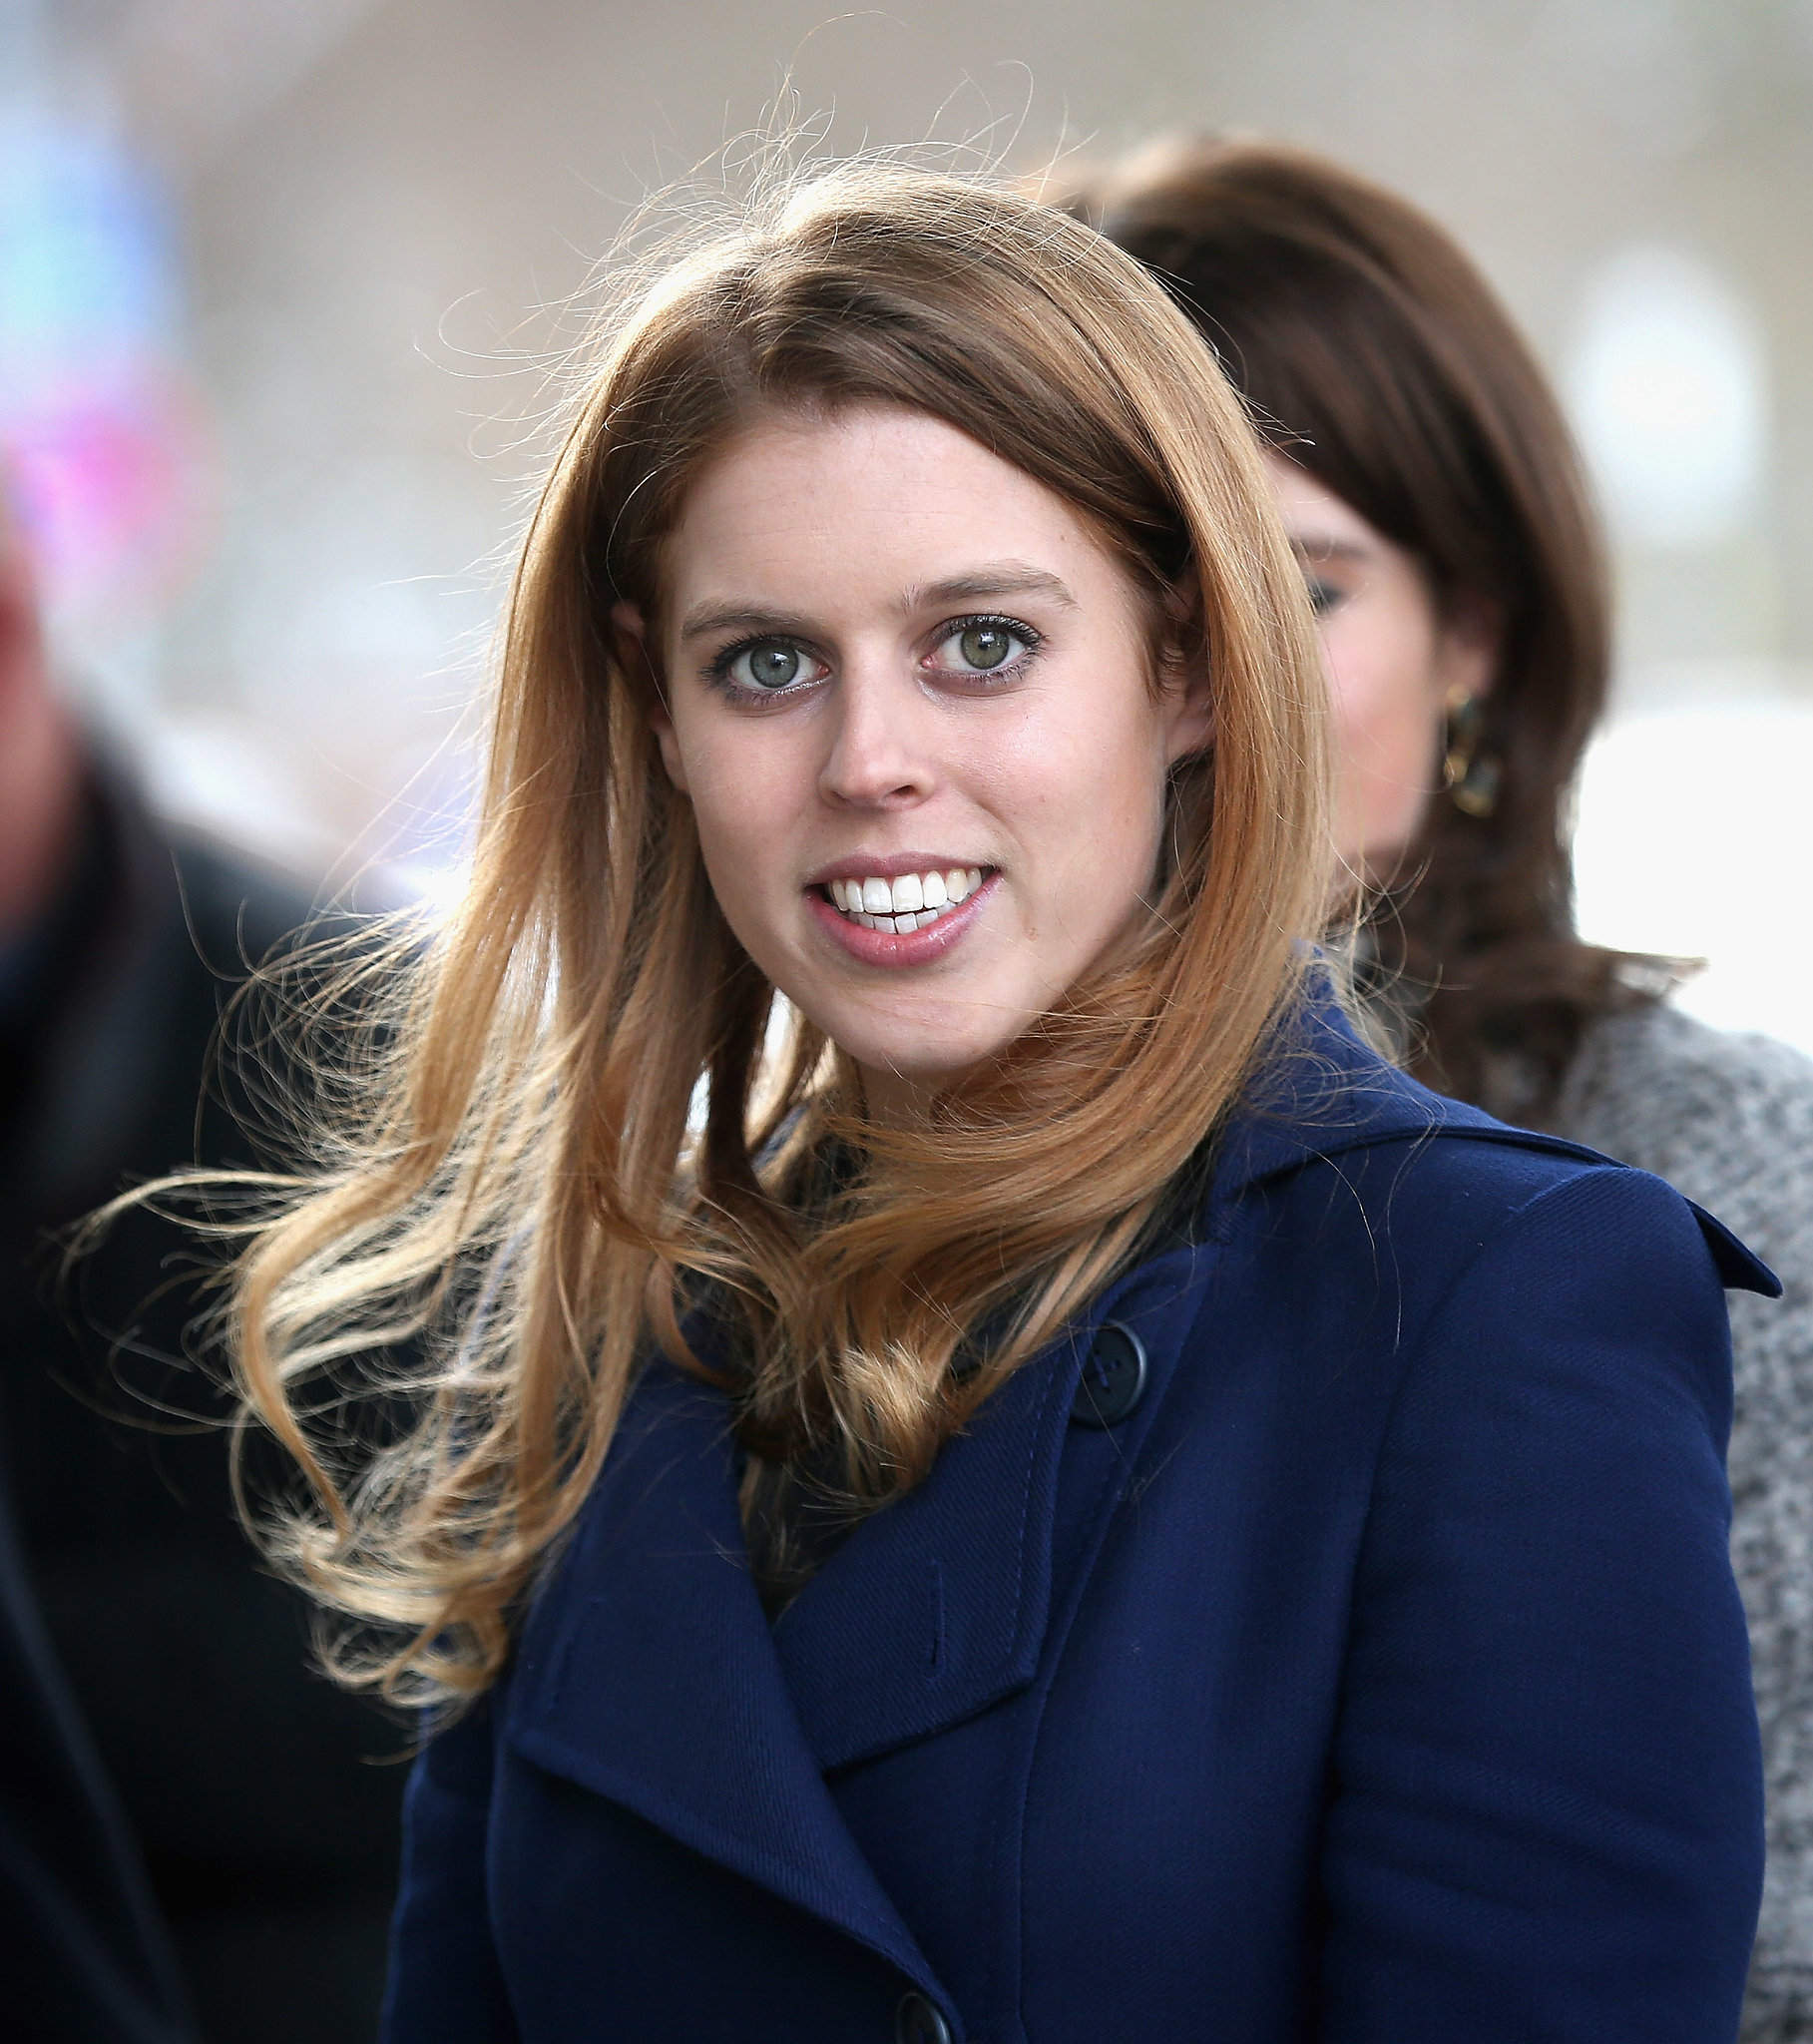 Princess Beatrice Of York Beauty Spotlight Royal Fever